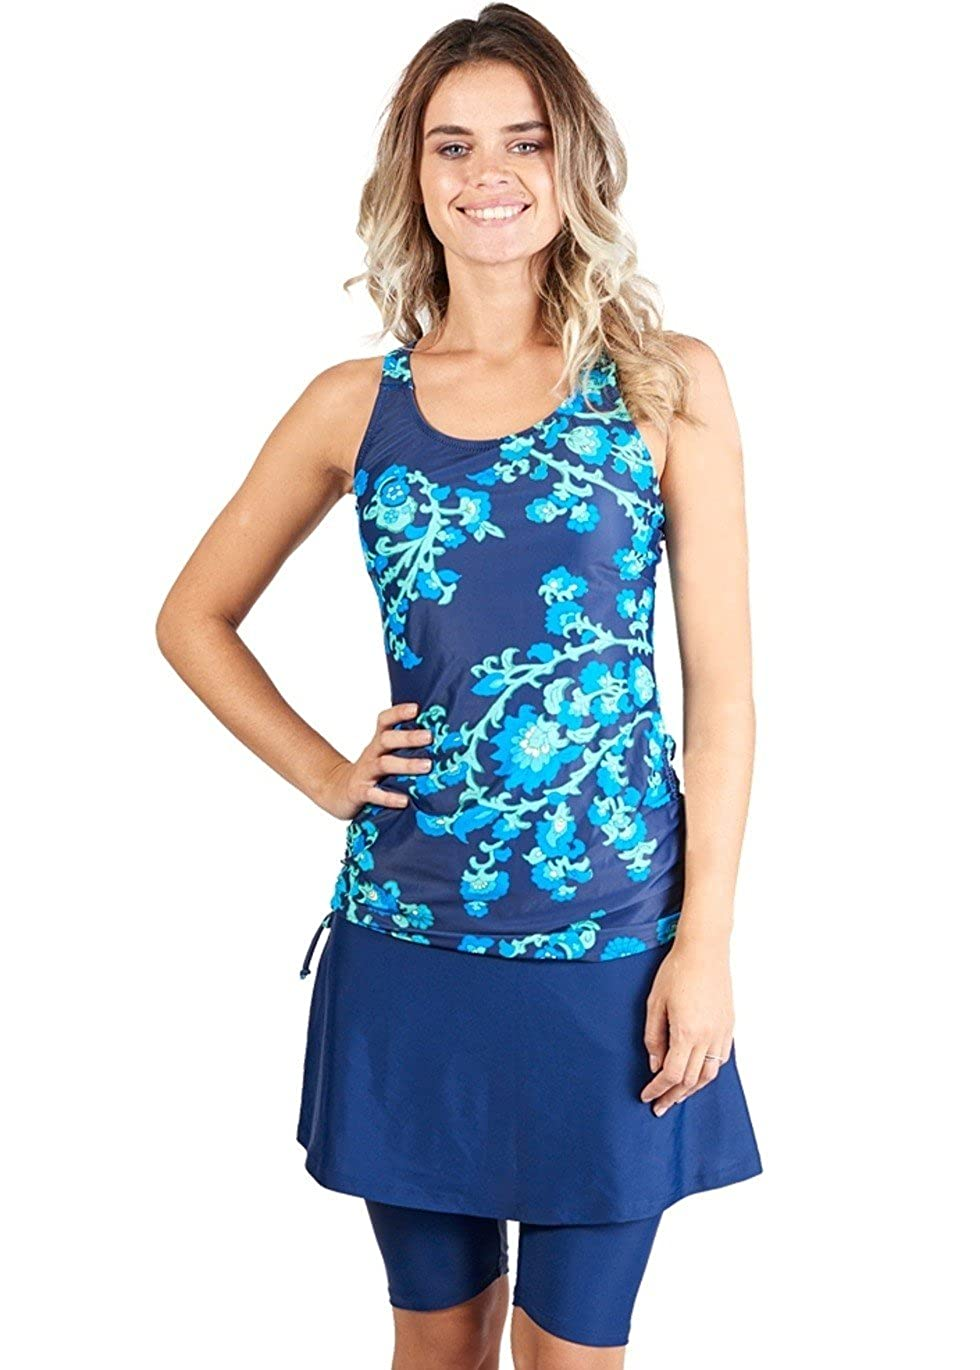 ac0df9882bfcd 82% Nylon 18% Spandex STYLISH AND MODEST - bright, patterned modest swimwear  you will be excited to wear! ADJUSTABLE FIT - the shirt features  drawstrings on ...